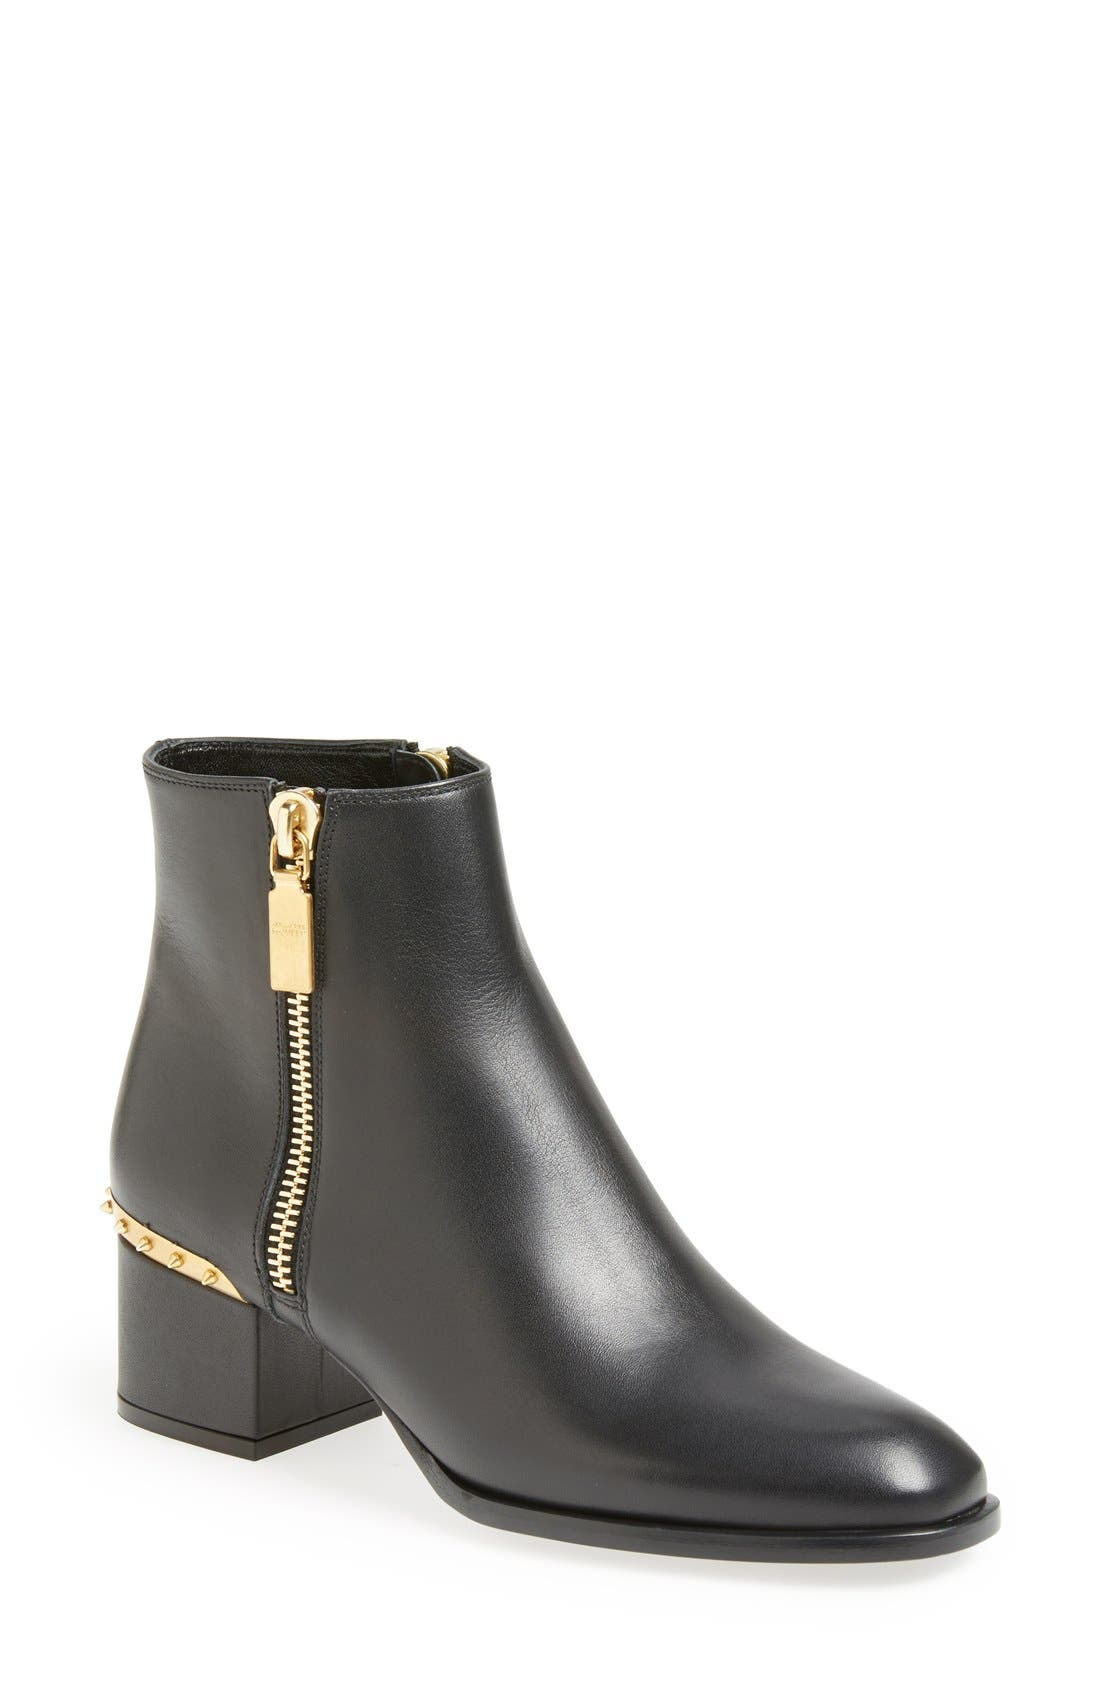 Main Image - Alexander McQueen Spike Short Boot (Women)